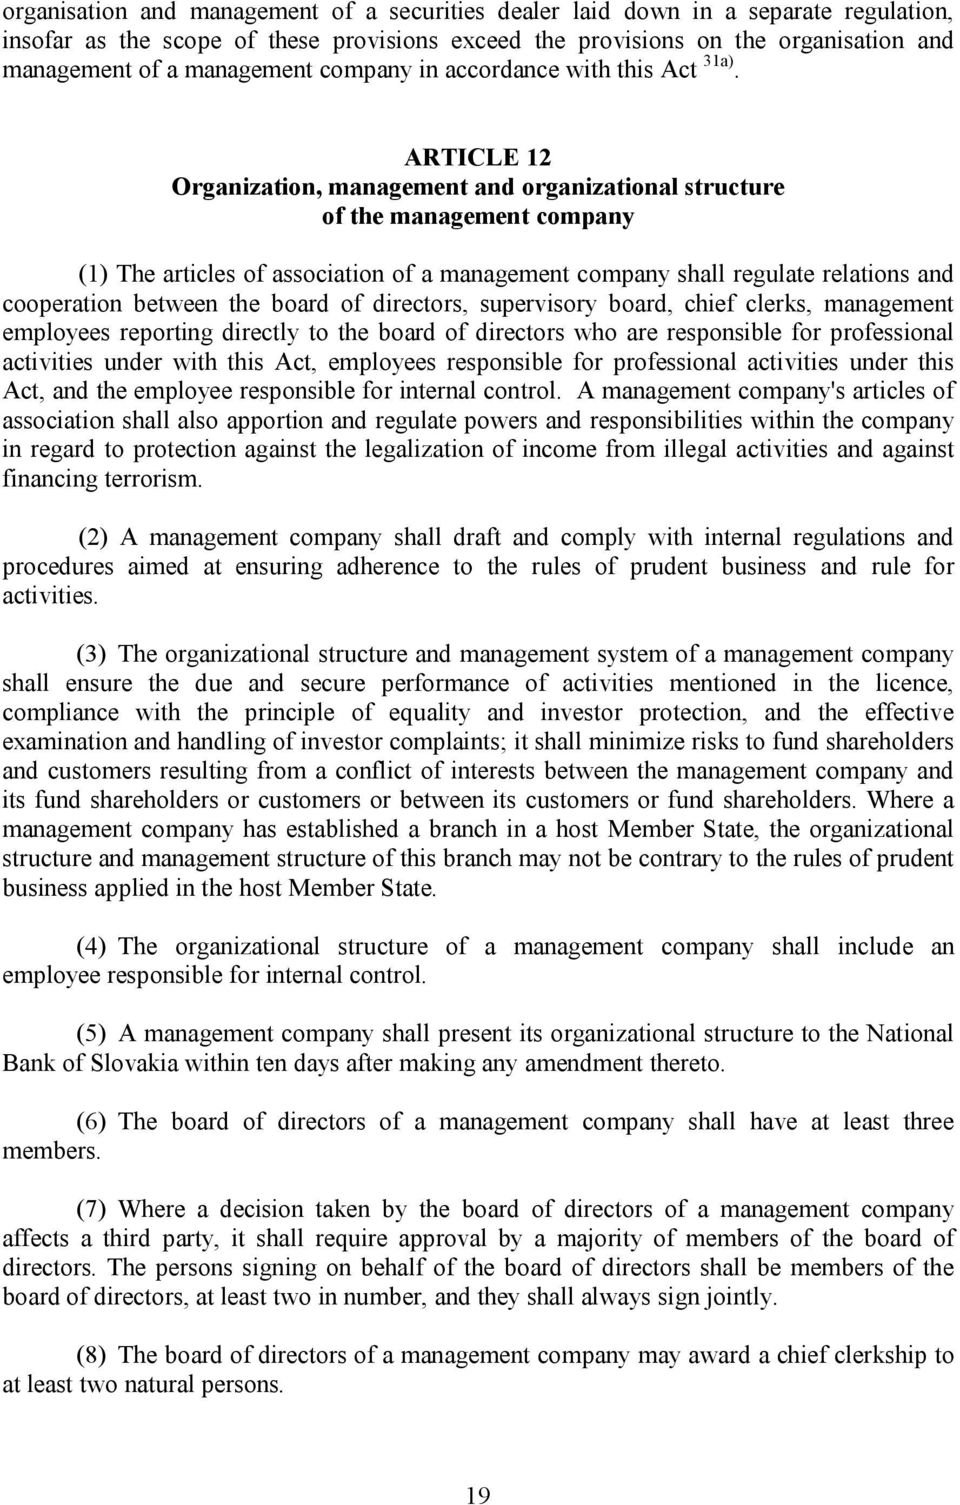 ARTICLE 12 Organization, management and organizational structure of the management company (1) The articles of association of a management company shall regulate relations and cooperation between the